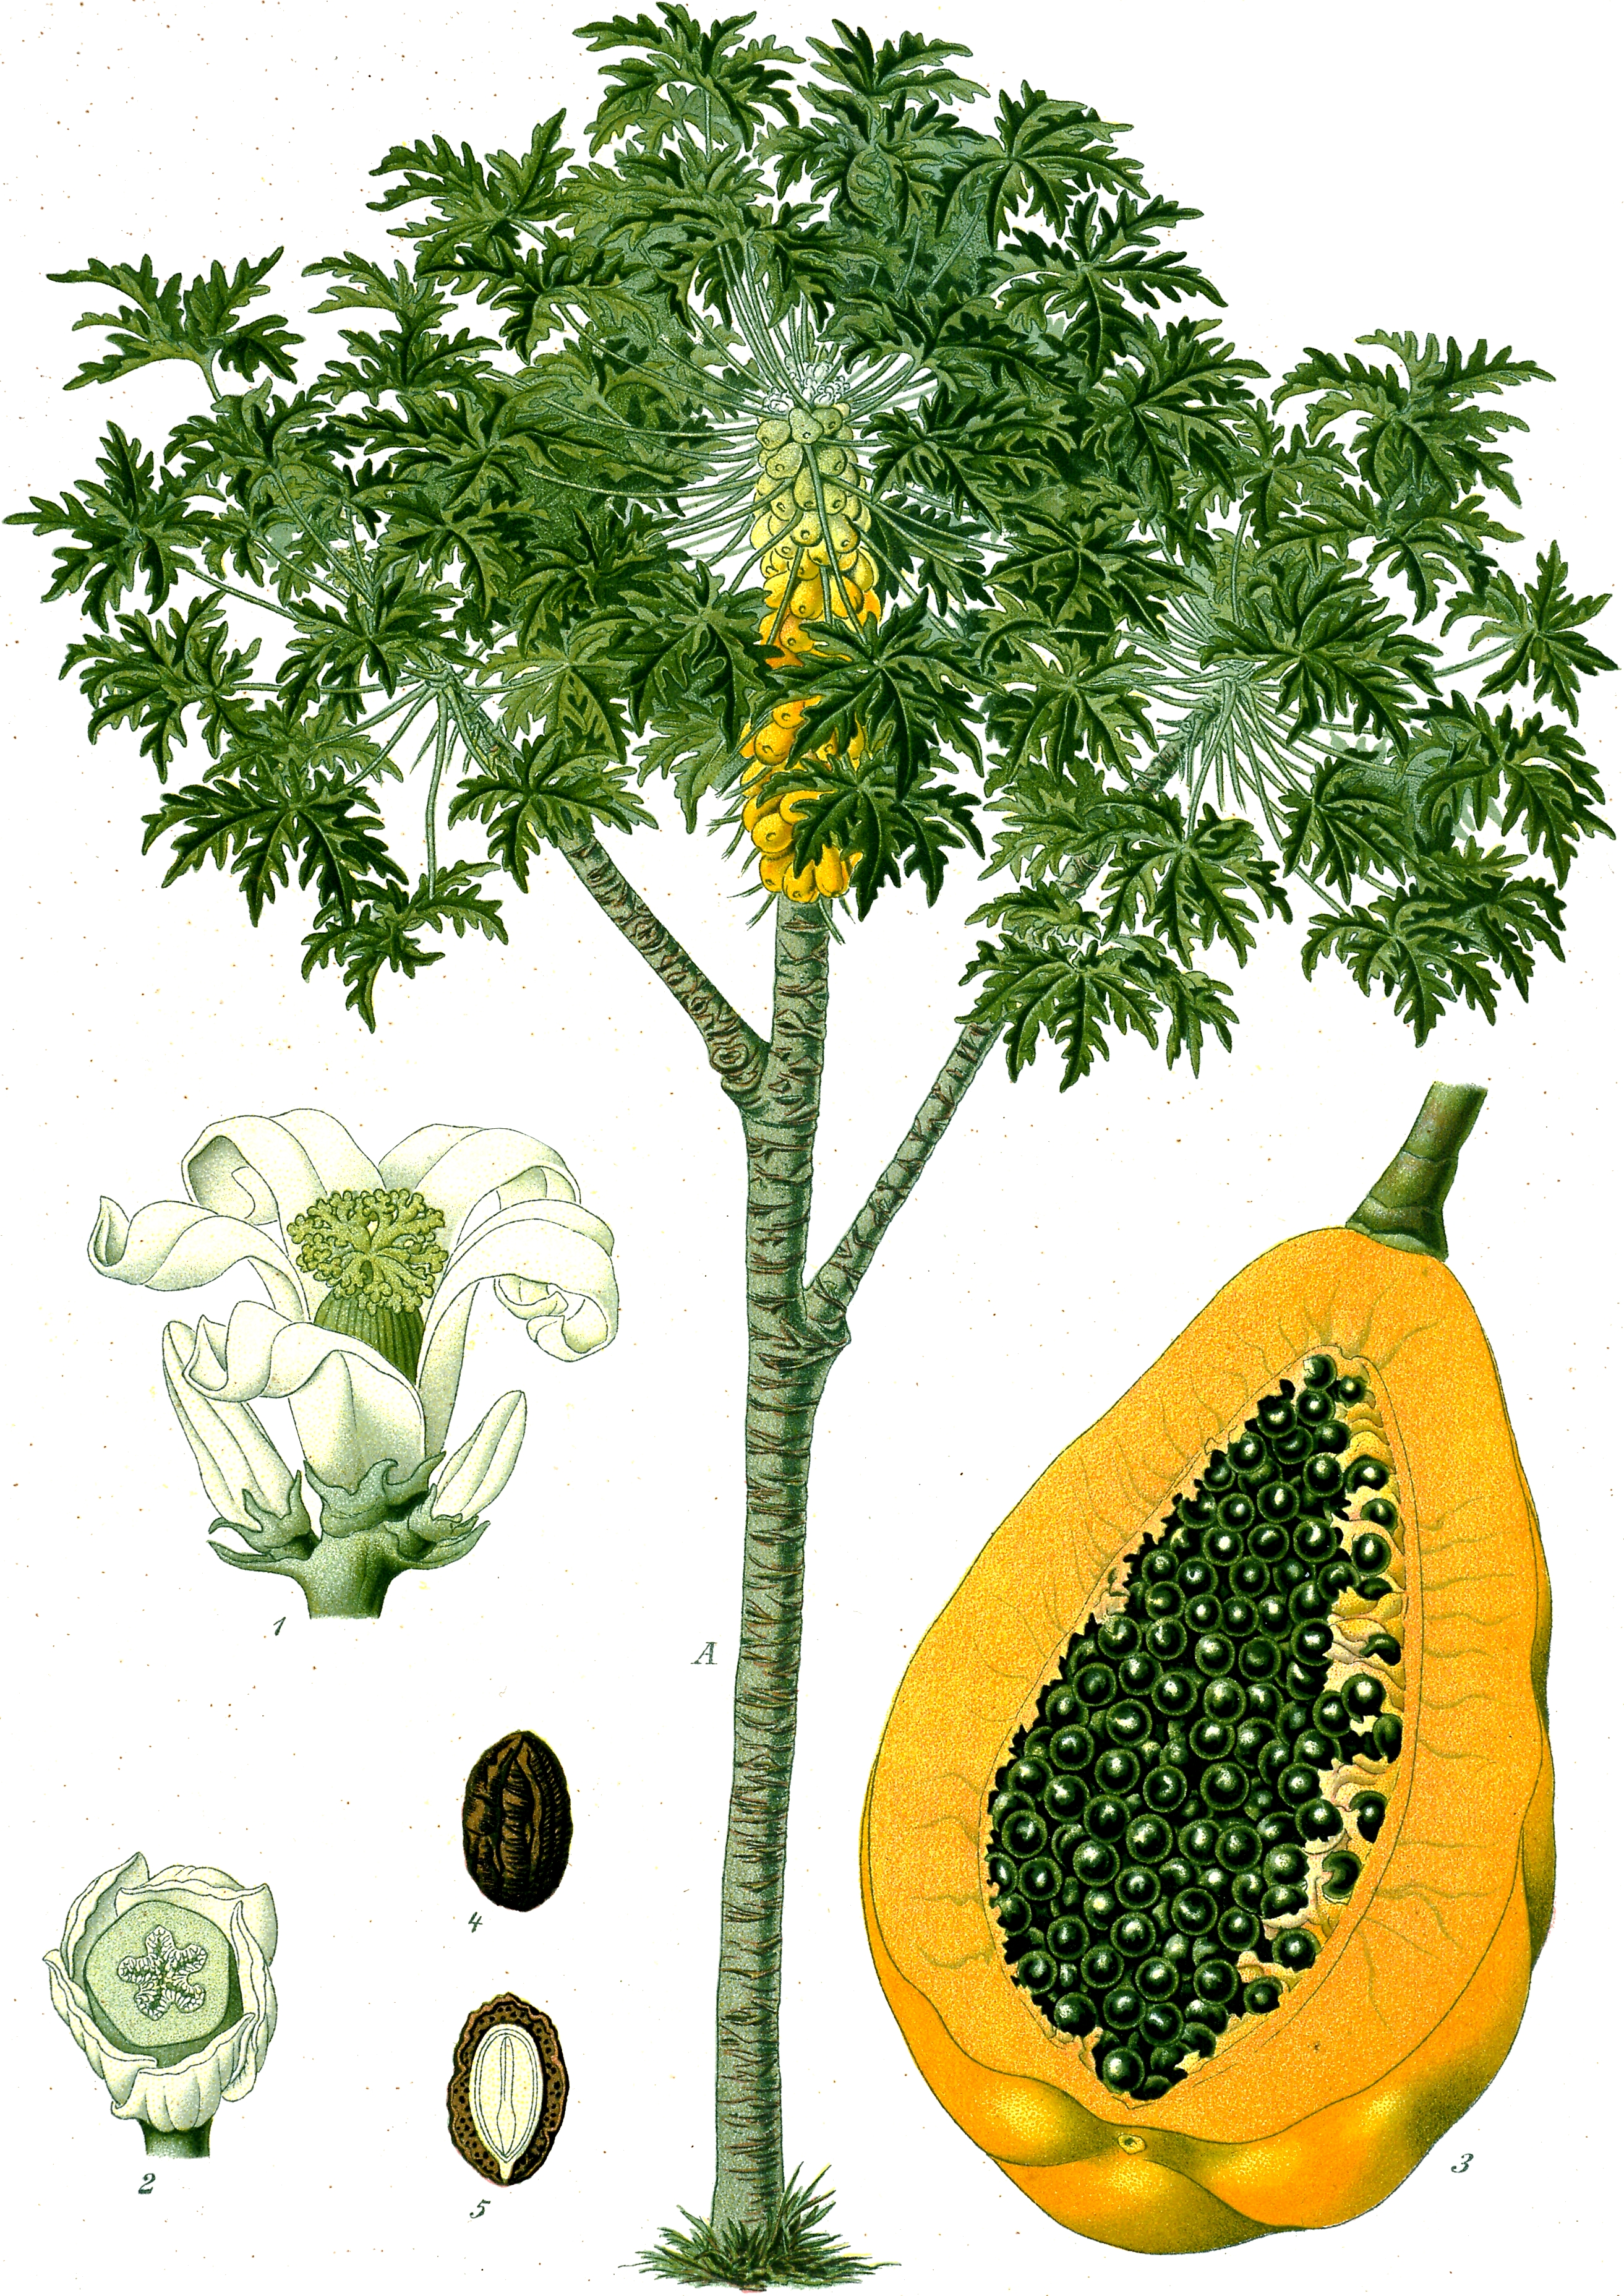 Papaya tree and fruit, from Koehler's Medicinal-Plants (1887)